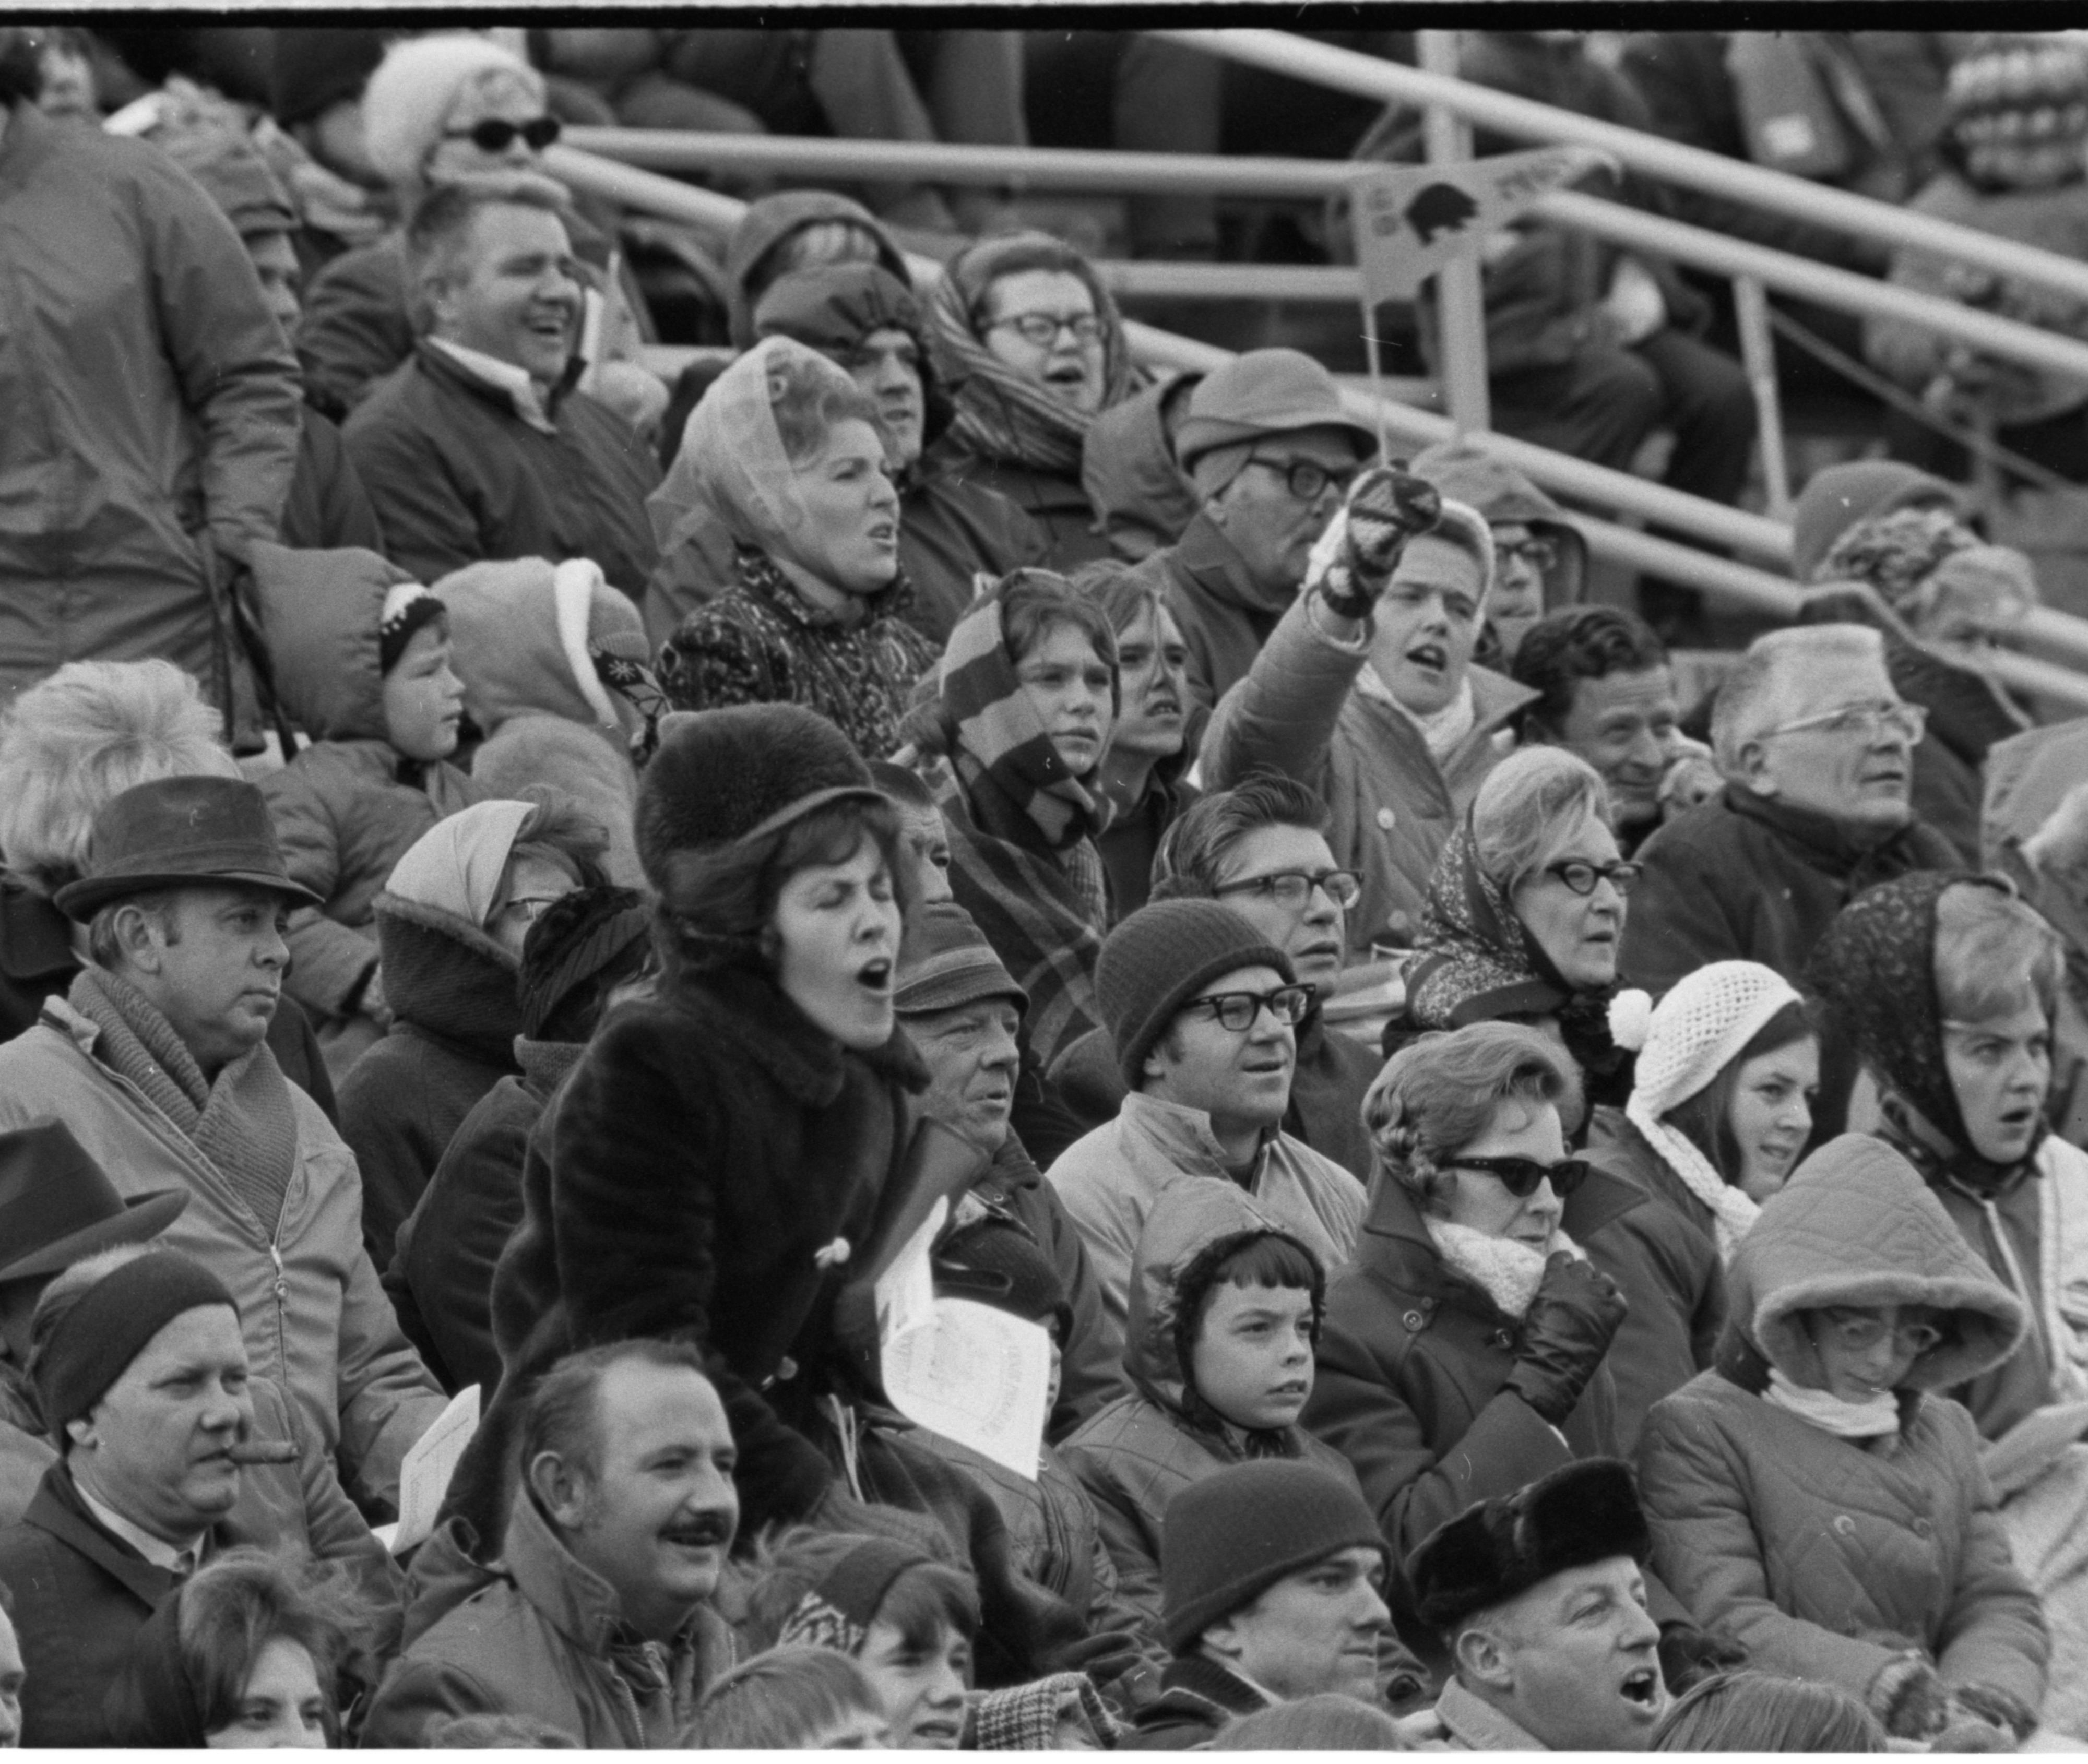 Fans Get Into The Spirit at the Annual Pig Bowl Game, November 1971 image